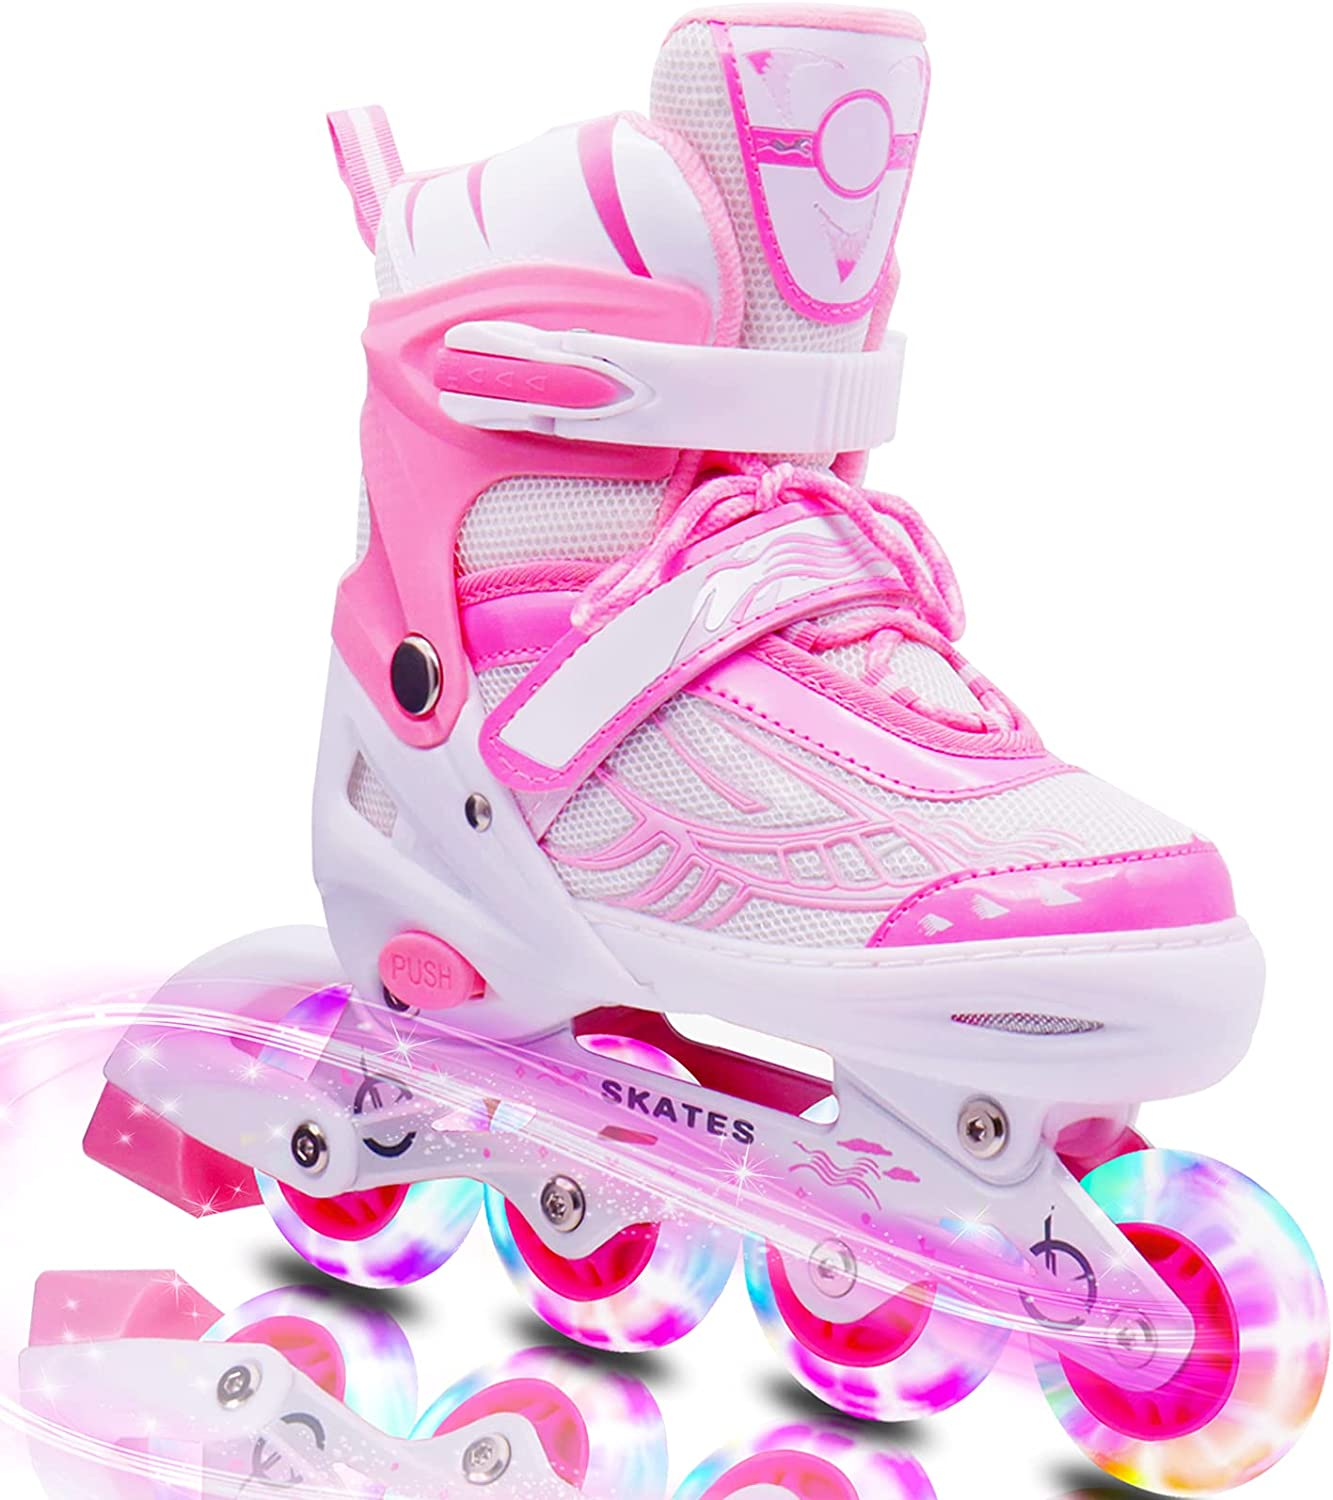 supreme ZLEIOUY Adjustable Inline Skates Omaha Mall for Kids Full Adults and L with